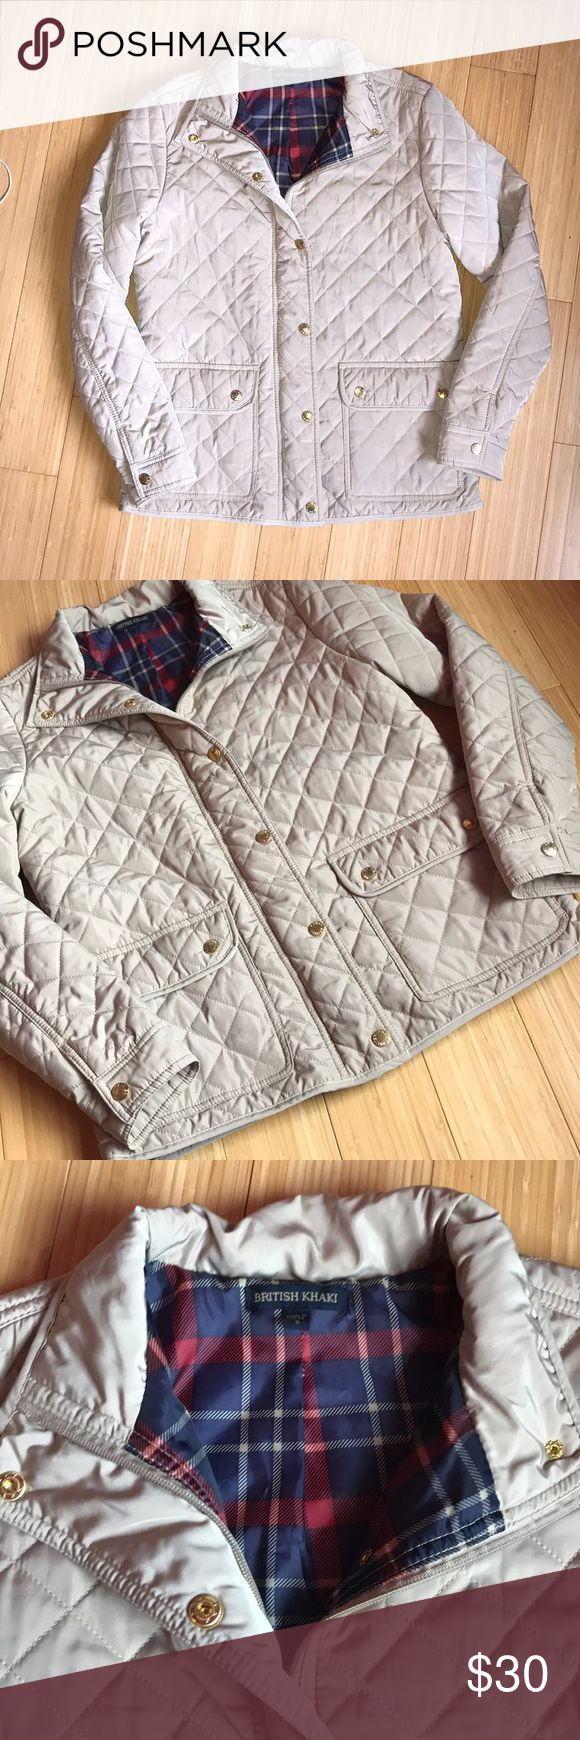 Quilted jacket Quilted British Khaki jacket with gold buttons, in perfect condition and never worn. Please feel free to make an offer :) British Khaki Jackets & Coats